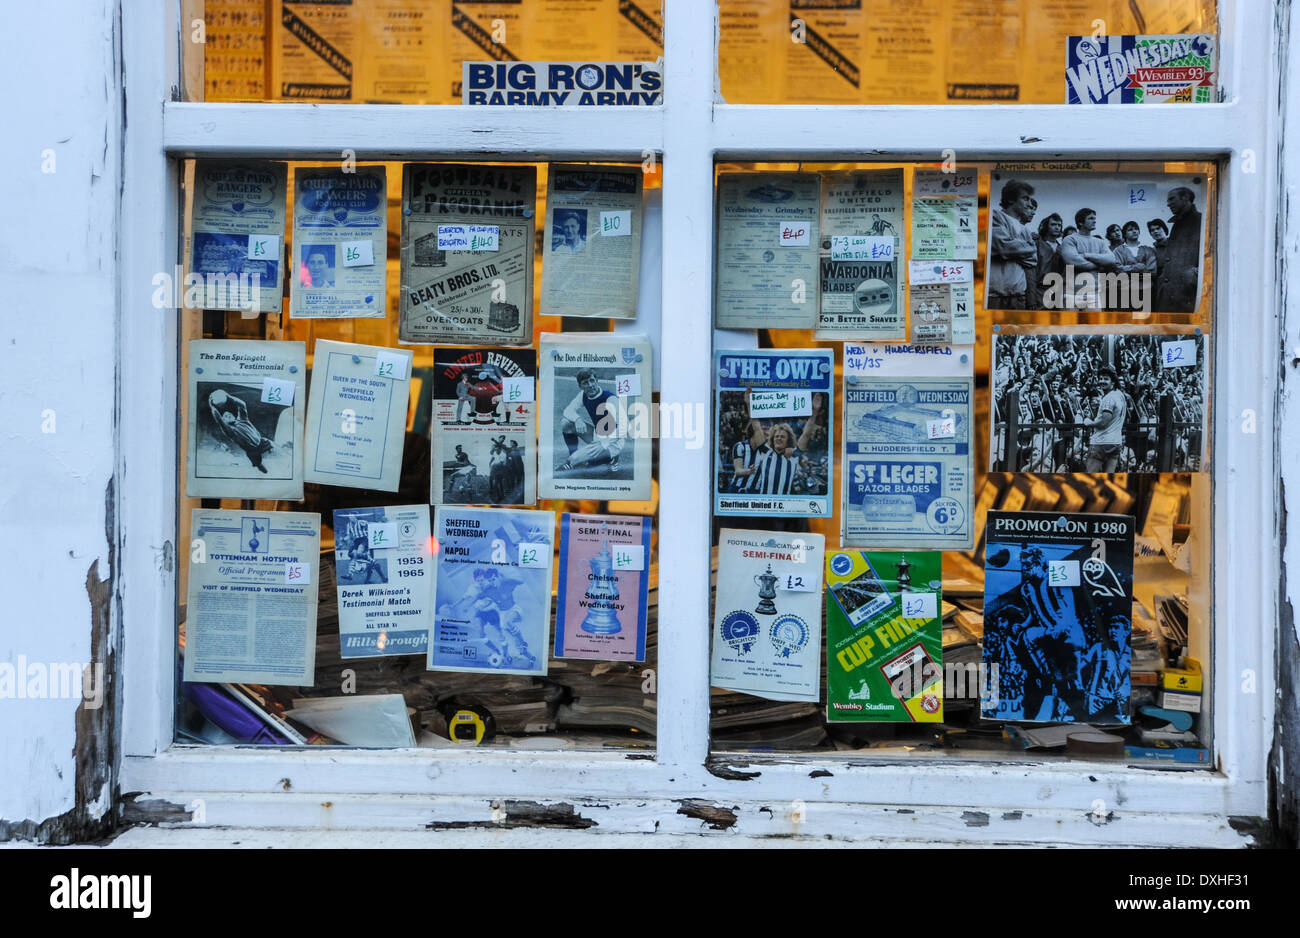 Shop selling old Sheffield Wednesday football programmes and memorabilia in Hillsborough area of Sheffield South Yorkshire - Stock Image